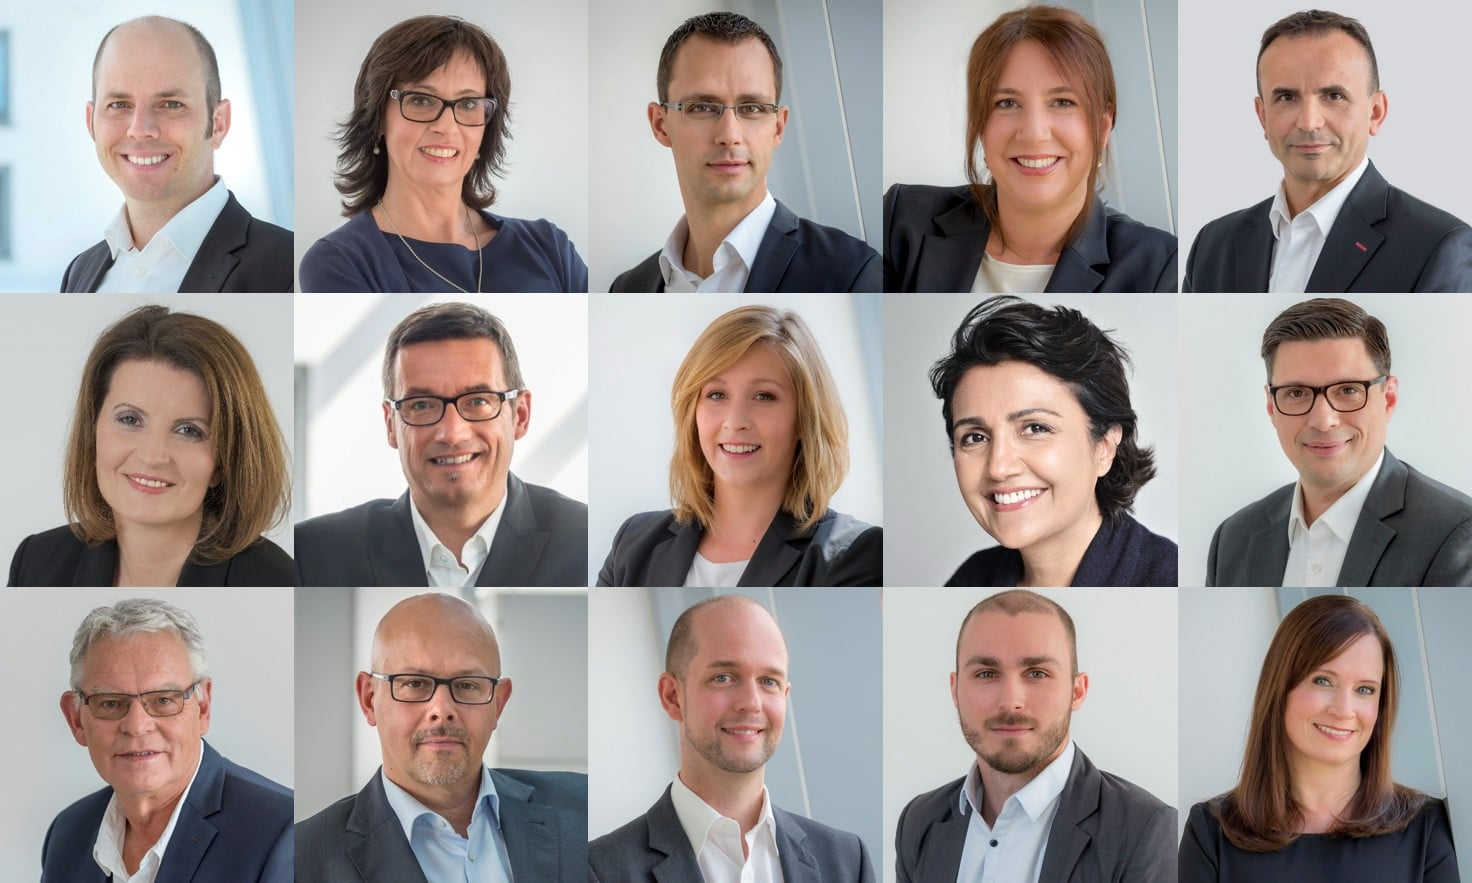 FMG - Interdisziplinäres Team